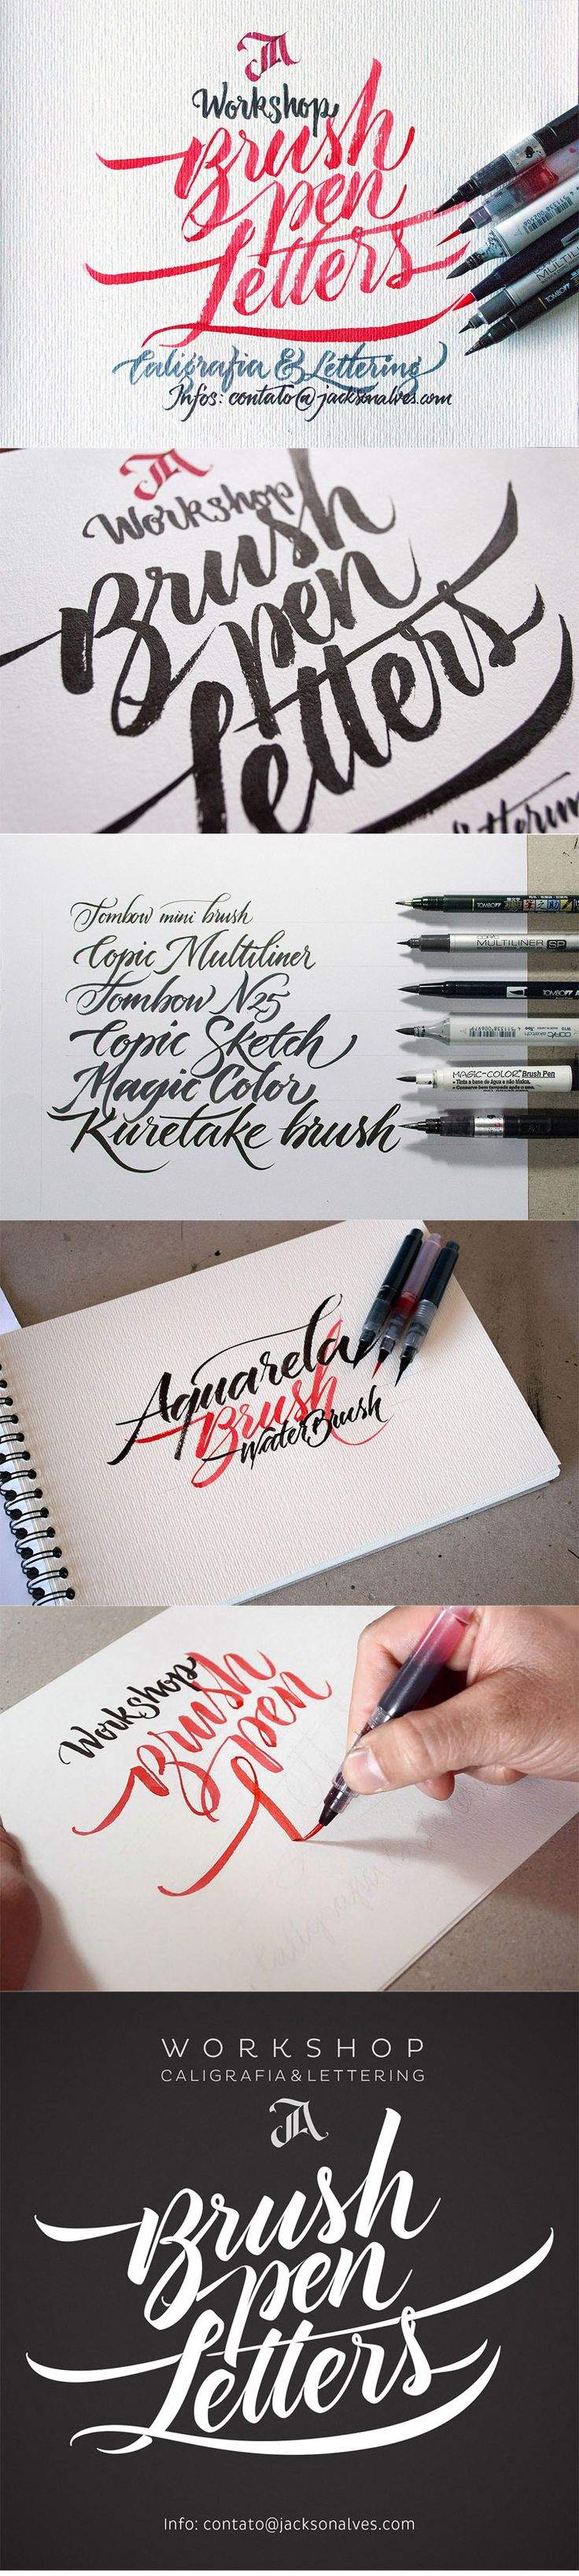 Buen recuerso: https://www.behance.net/gallery/18025625/Workshop-Brush-pen-Letters